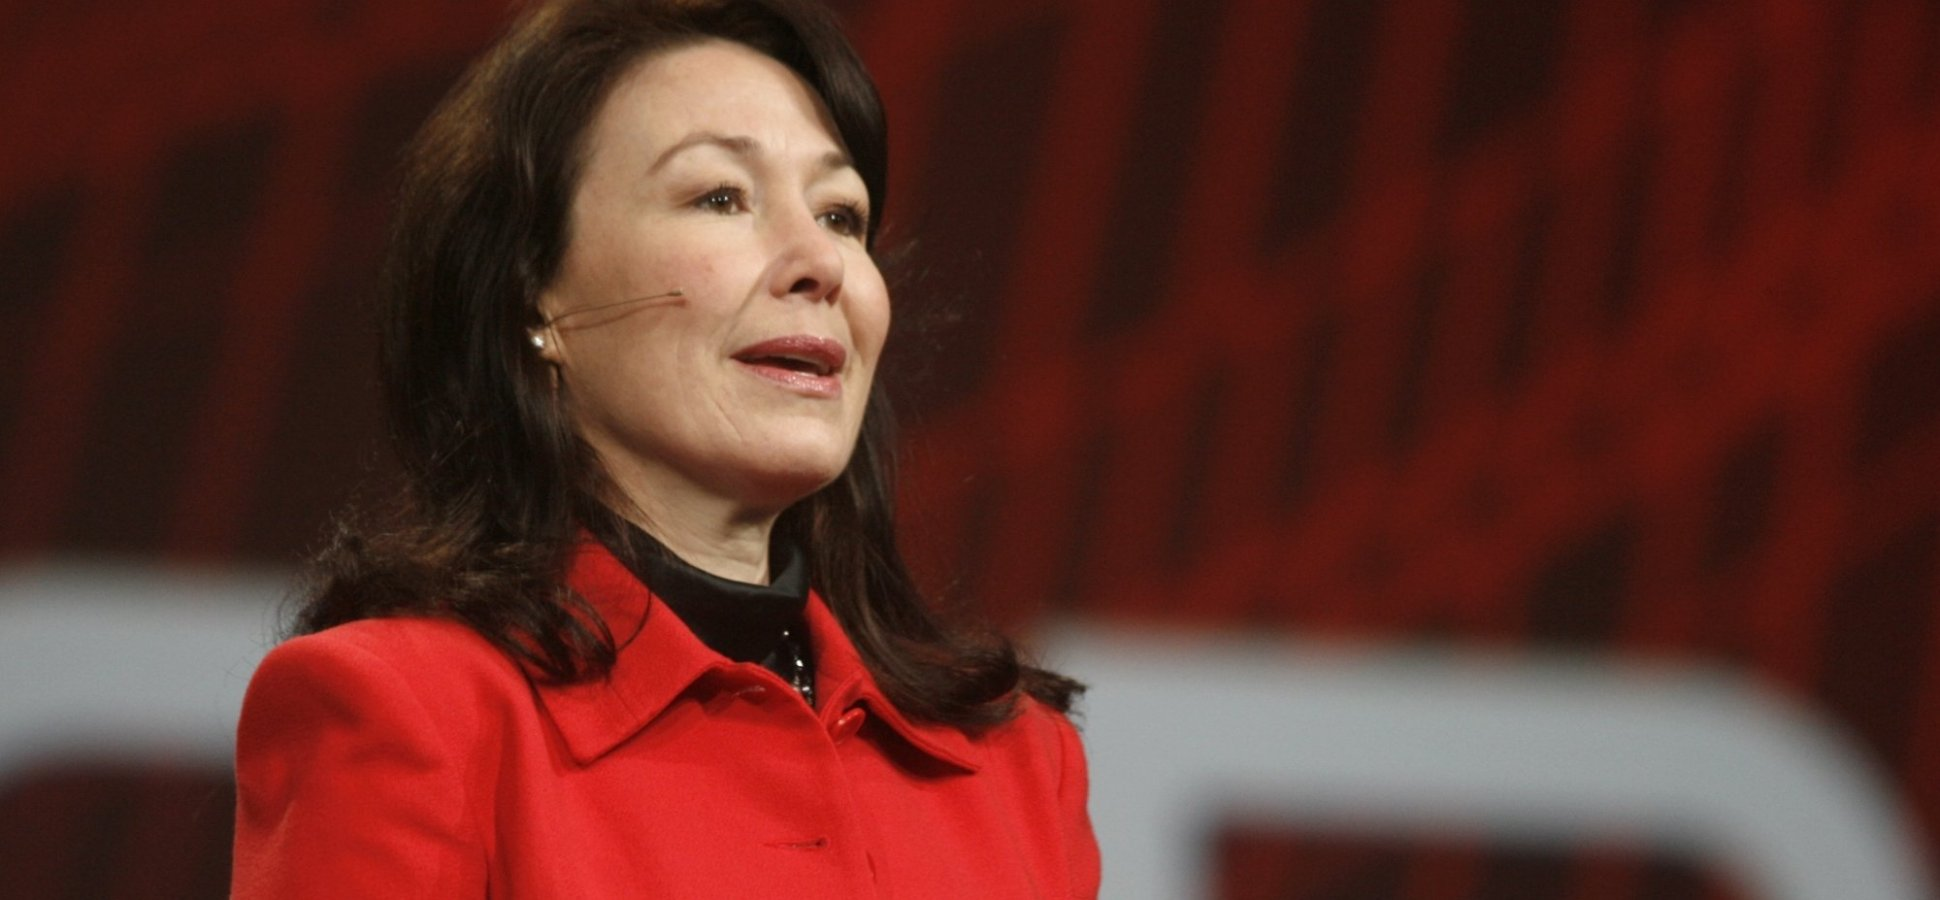 10 CEOs Who Didn't Become Successful Until Their Late 30s or 40s